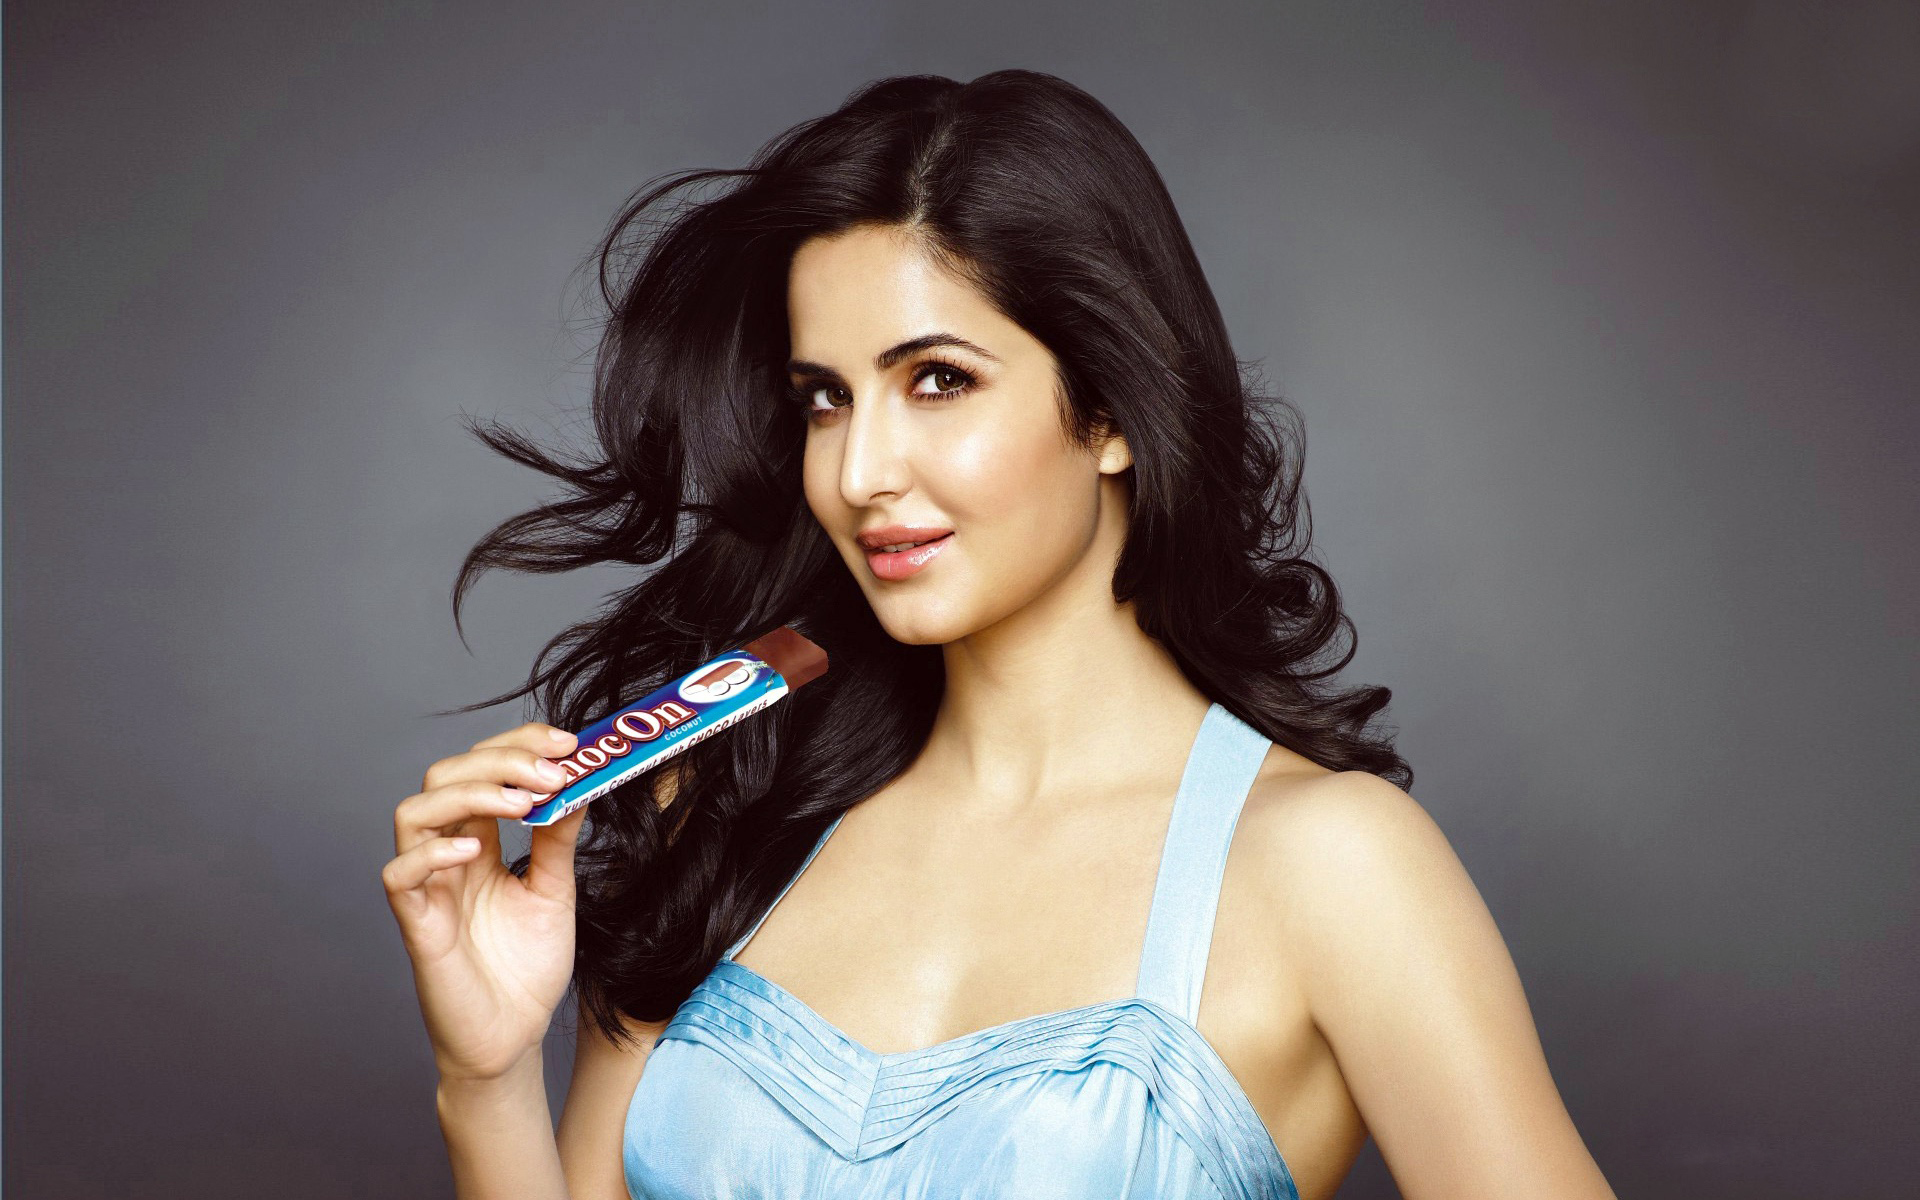 download katrina kaif ad photoshoot 2560x1440 resolution, full hd